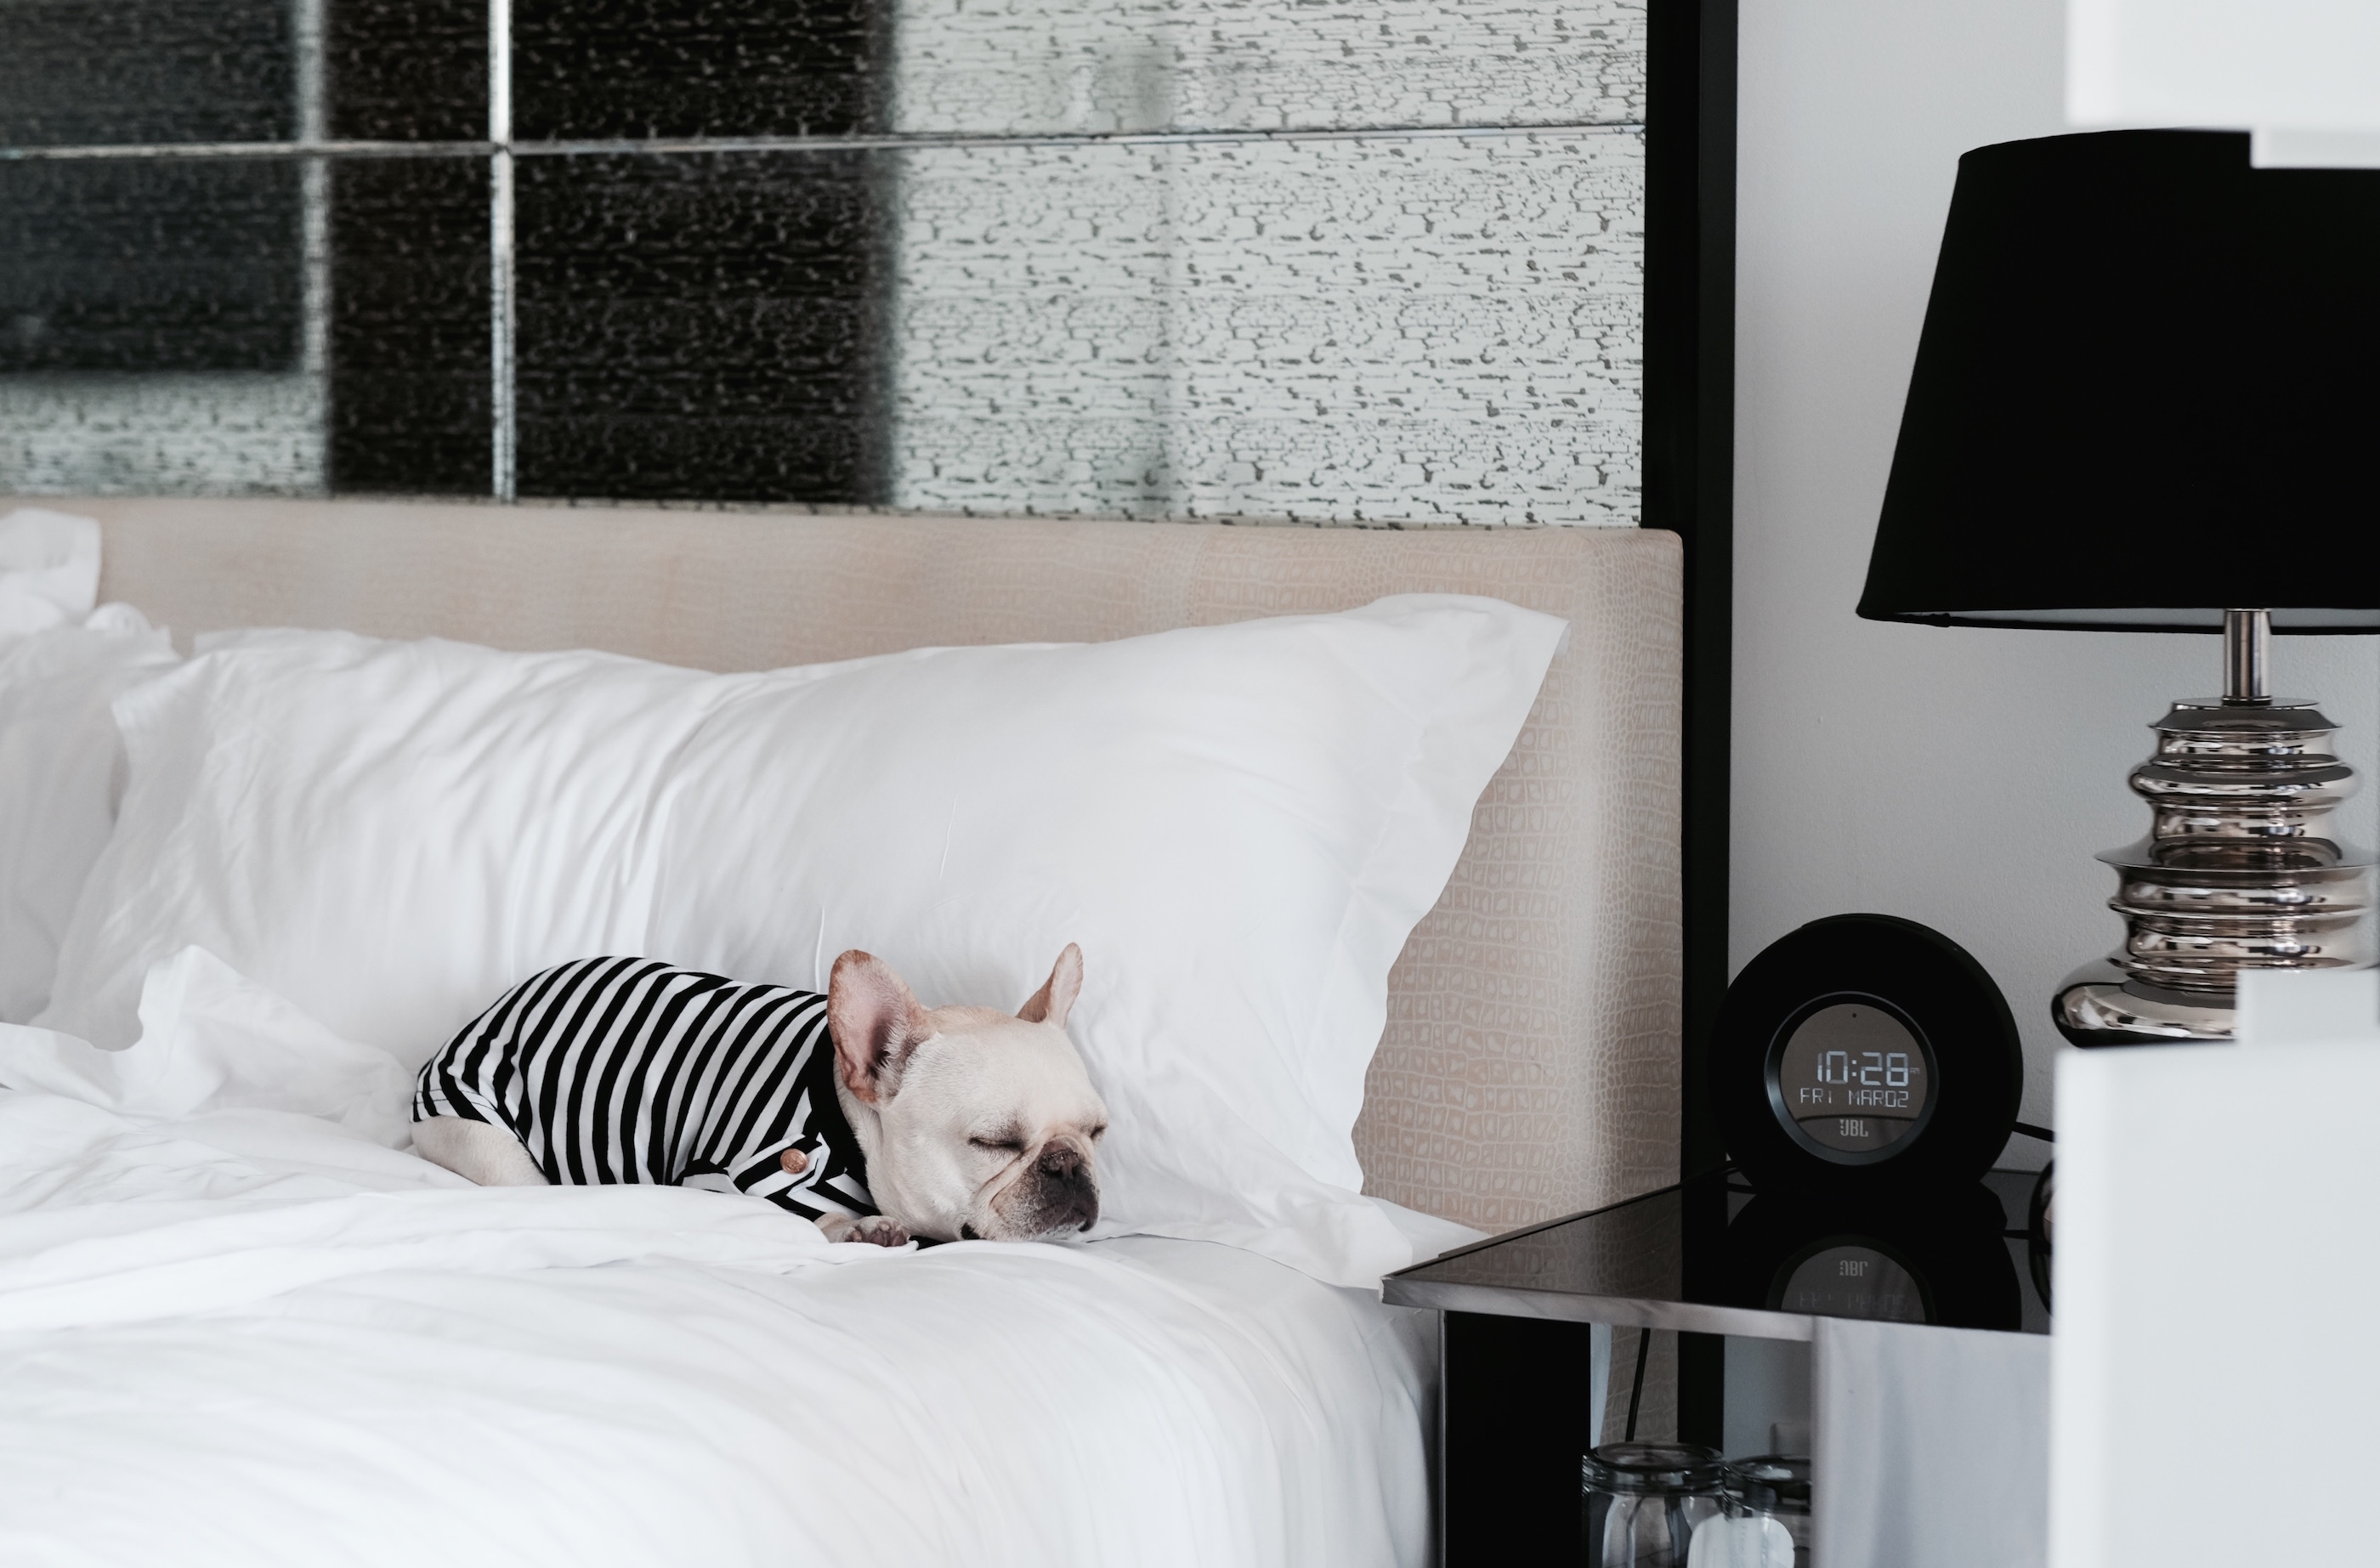 french bulldog in hotel bed